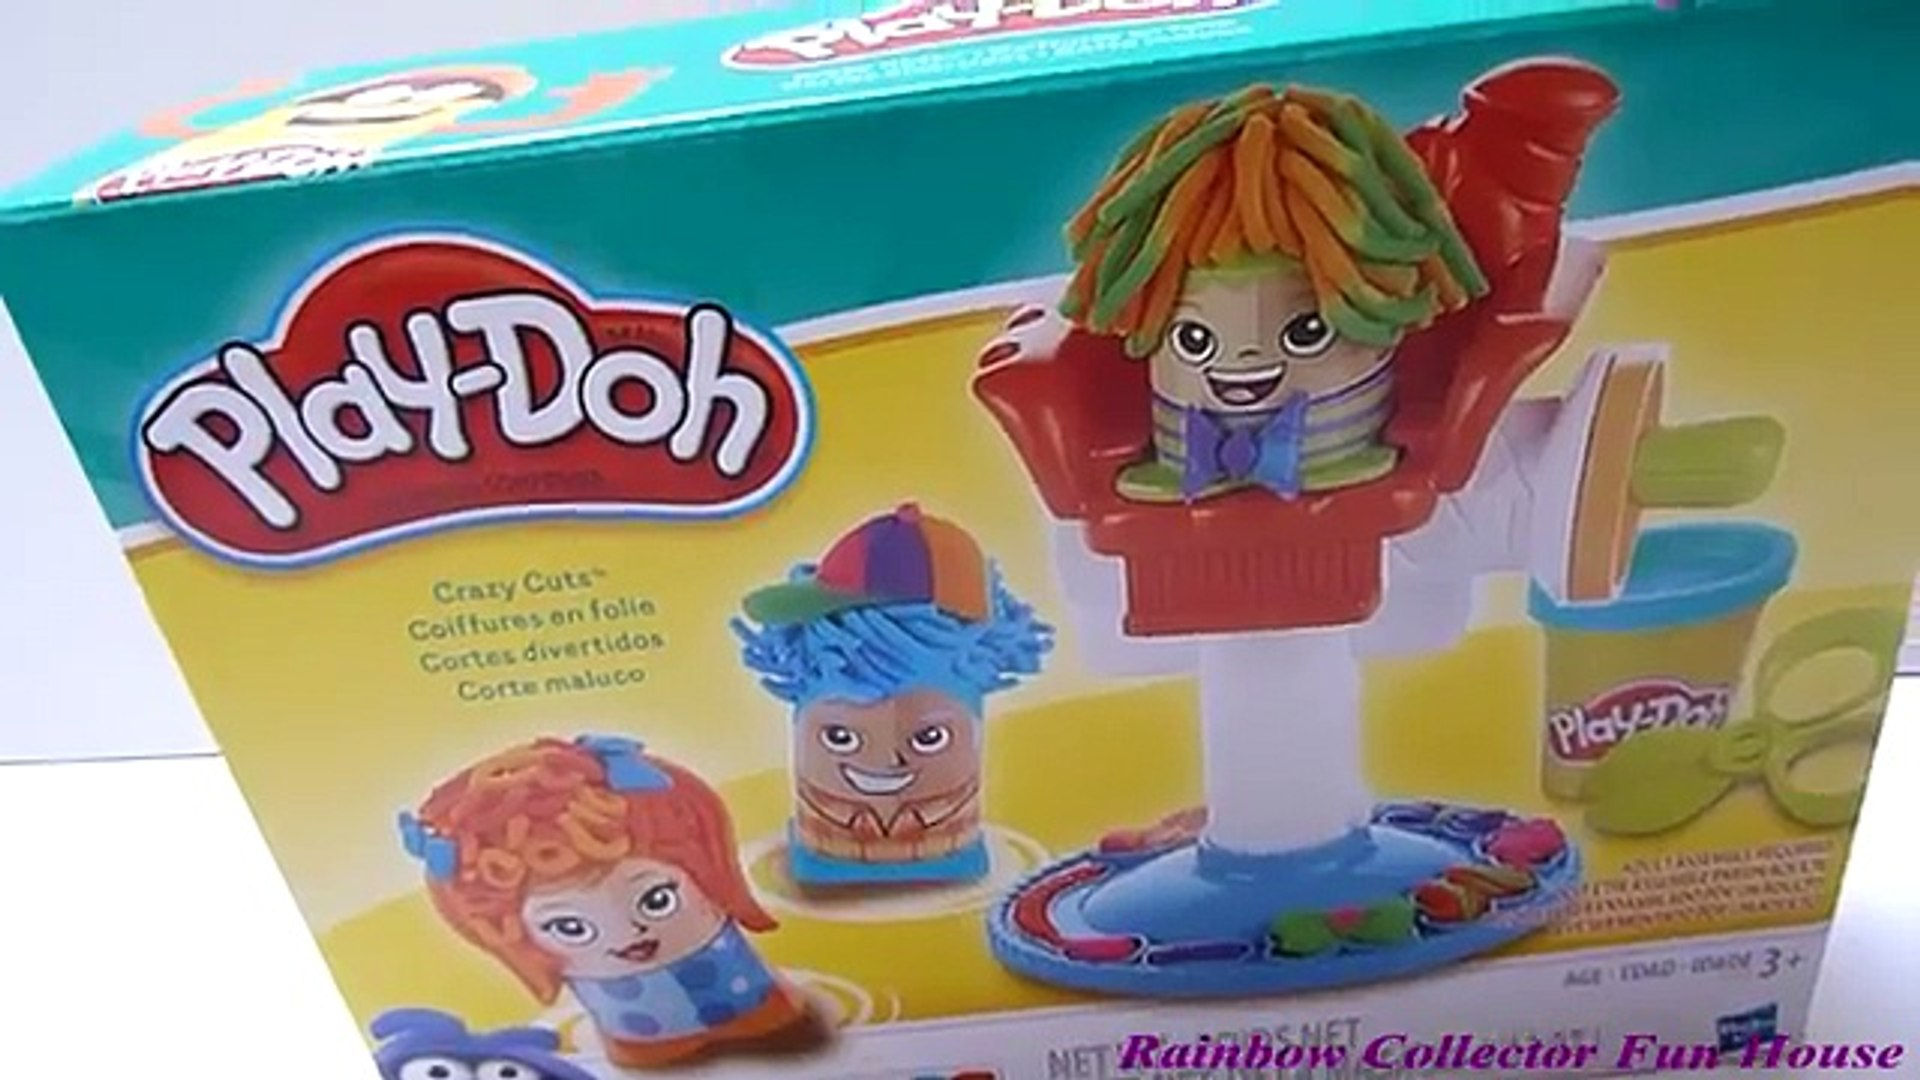 Play-Doh Crazy Cuts Hair Cut Salon Playset - Beautiful Play-Doh Hair Style   Rainbow Collector